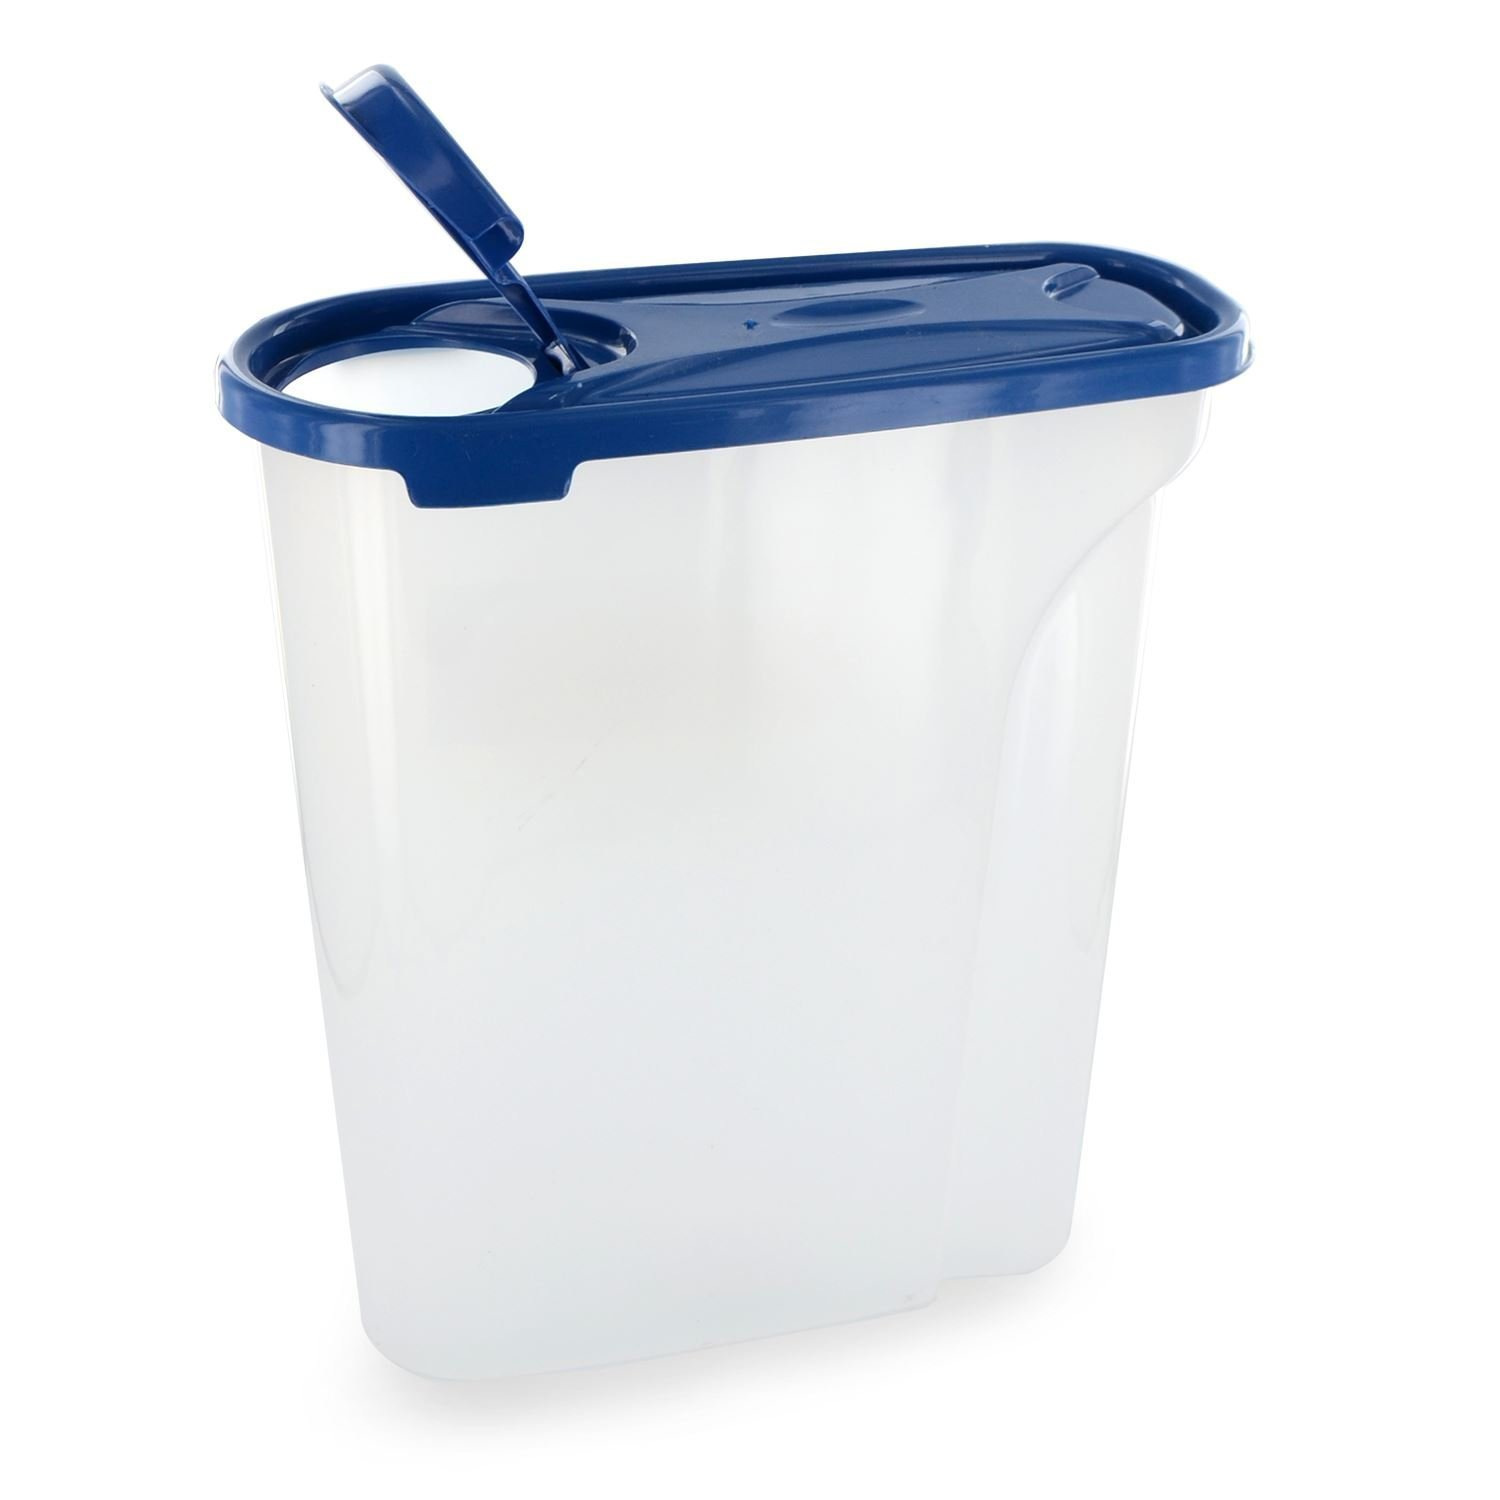 pp american round tub oz containers lid product storage p clear all